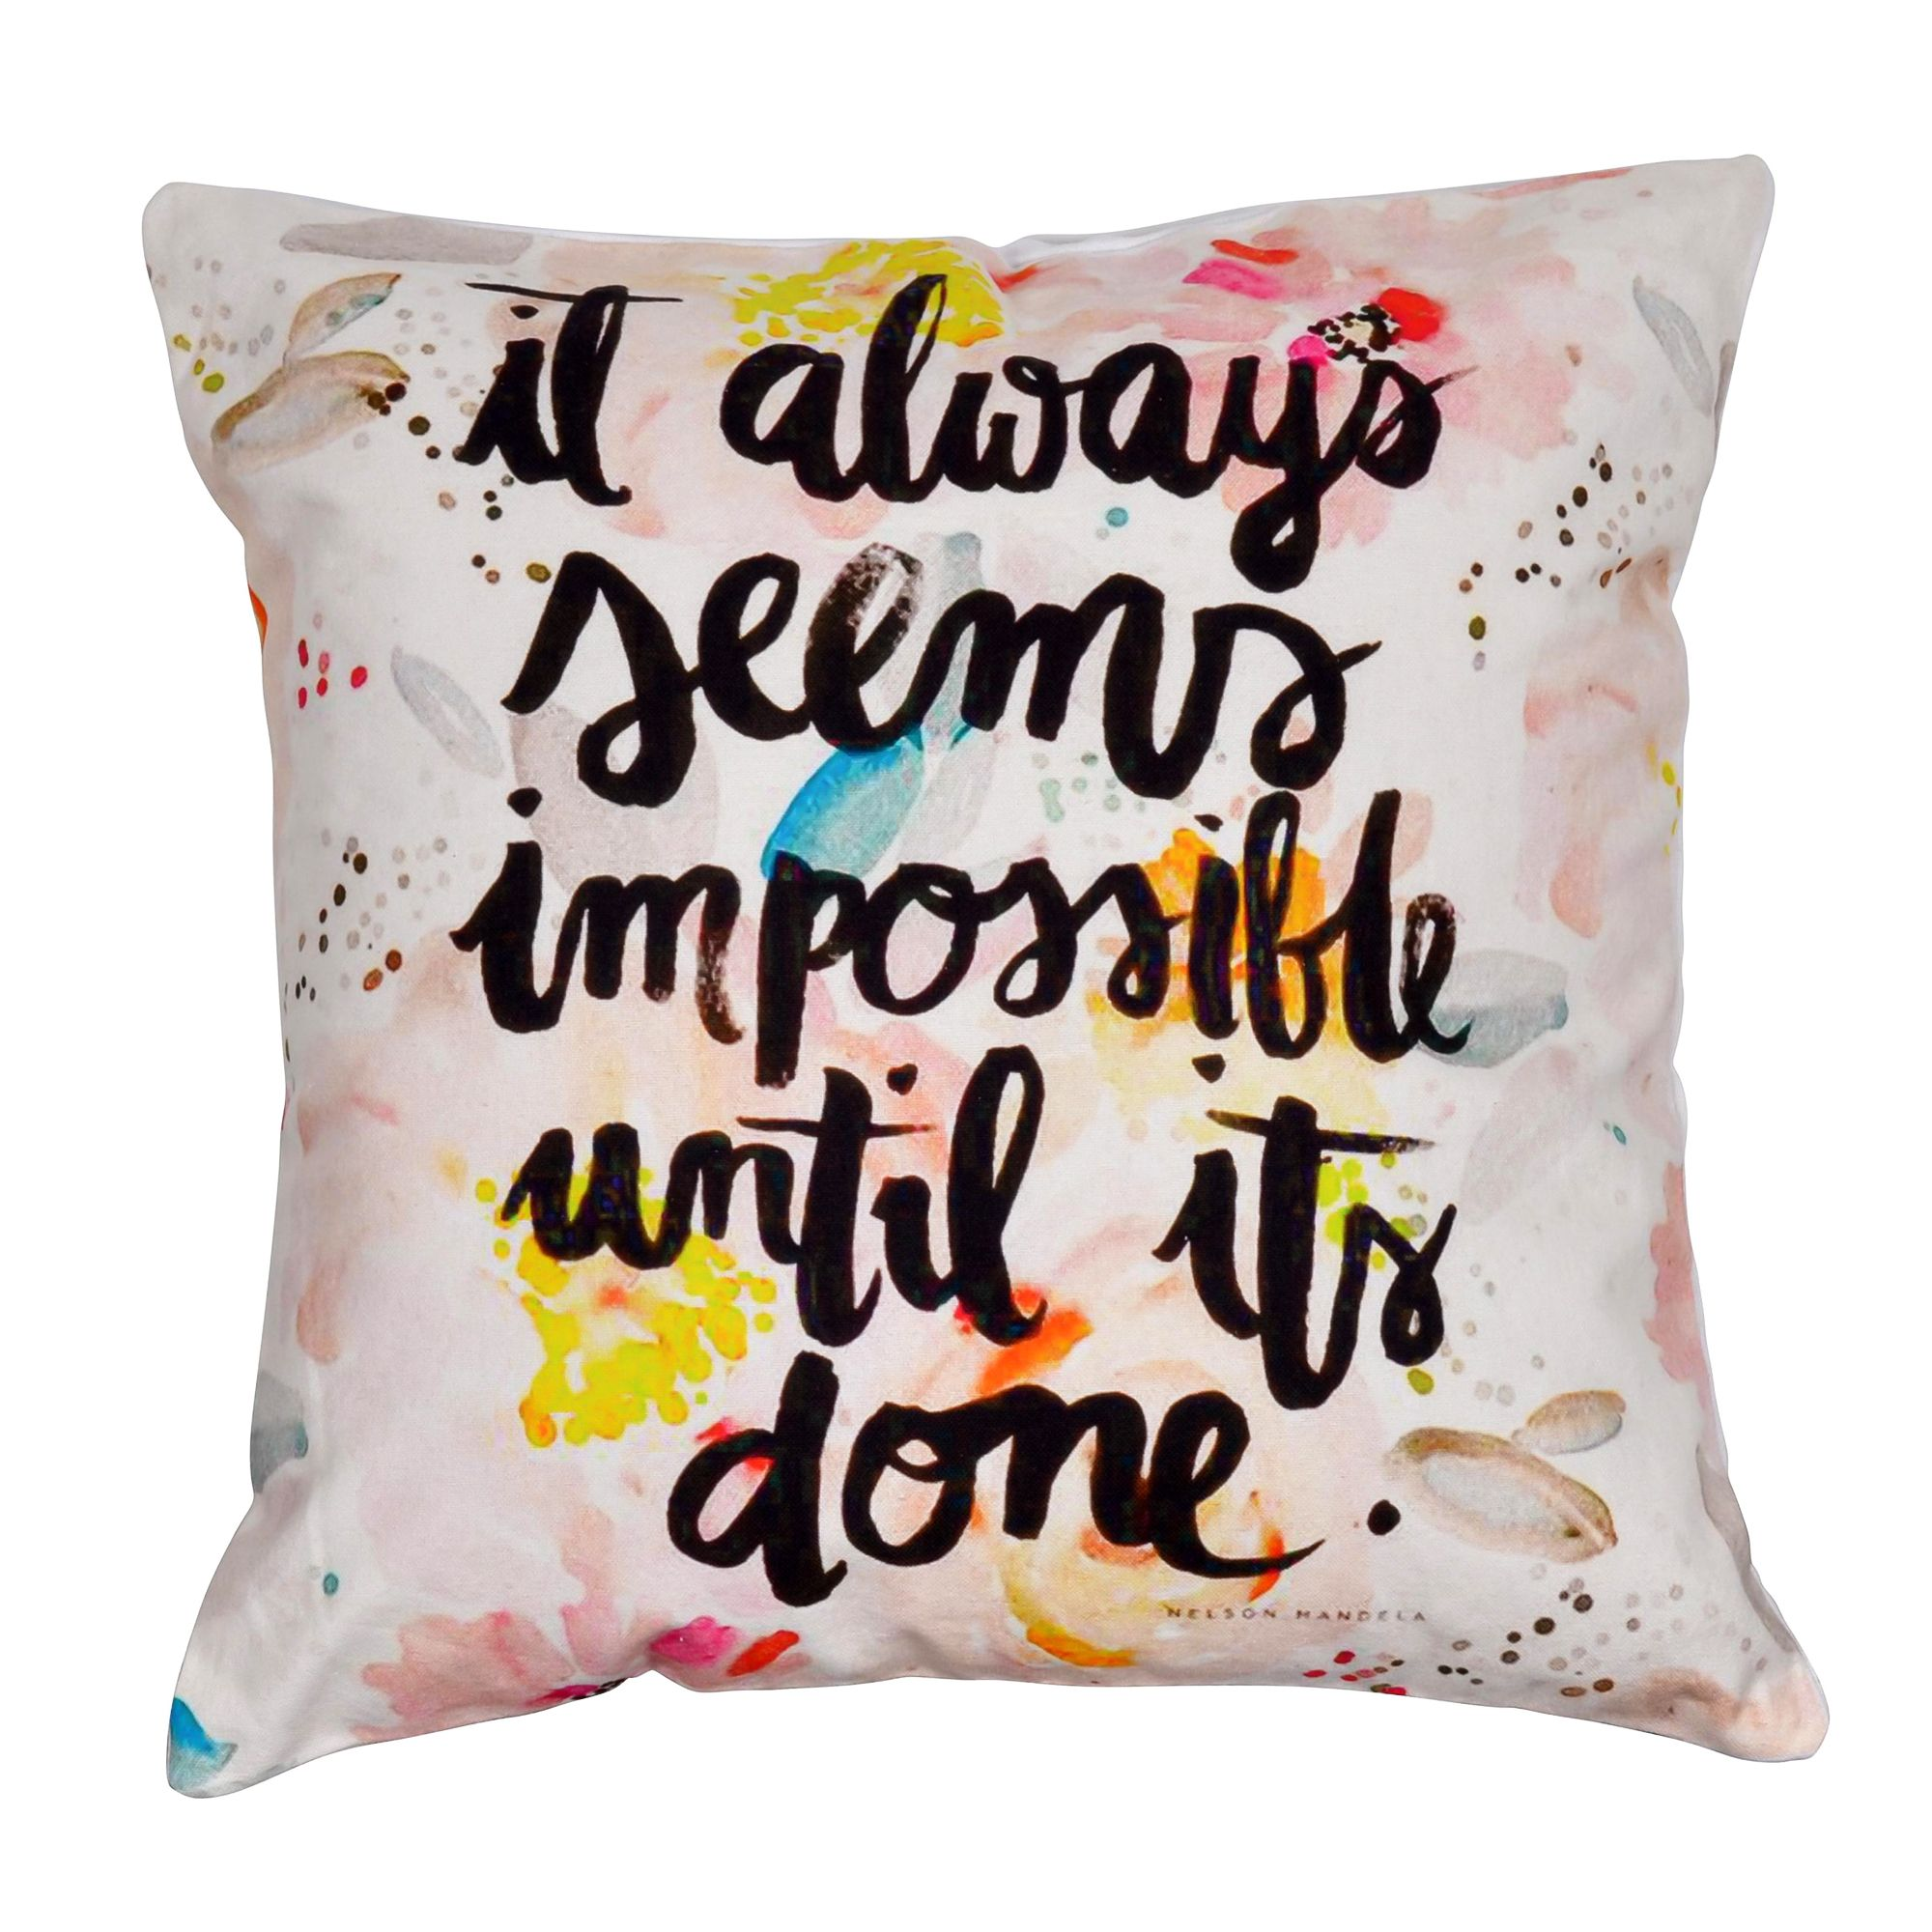 "Inspiration 16"" Digital Print Cushion Cover"